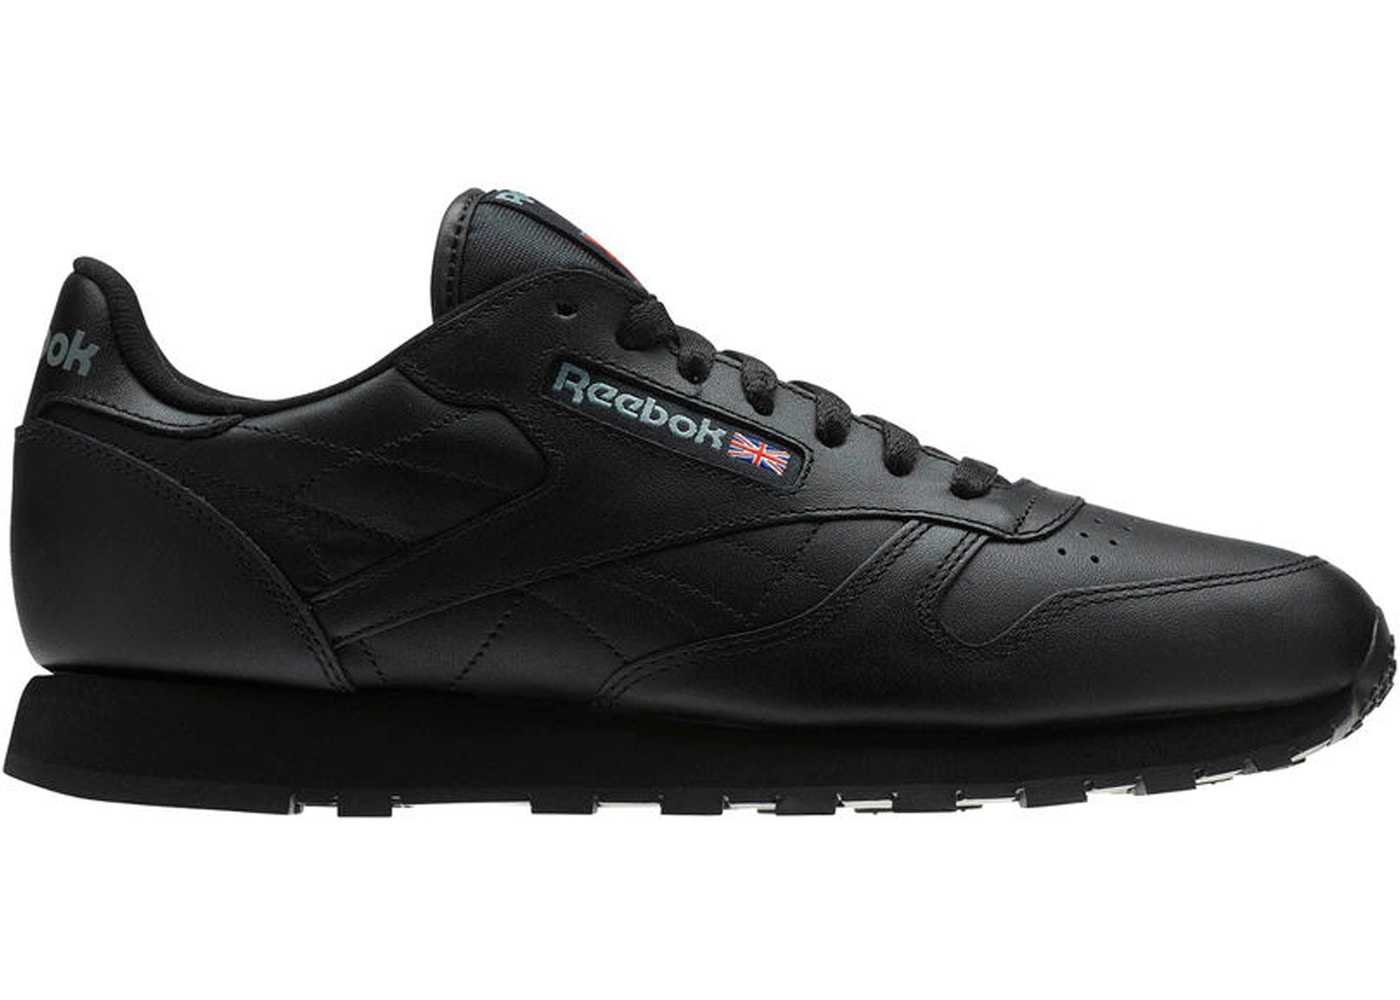 da26ef81a9c0 Reebok Classic Leather Black - 116